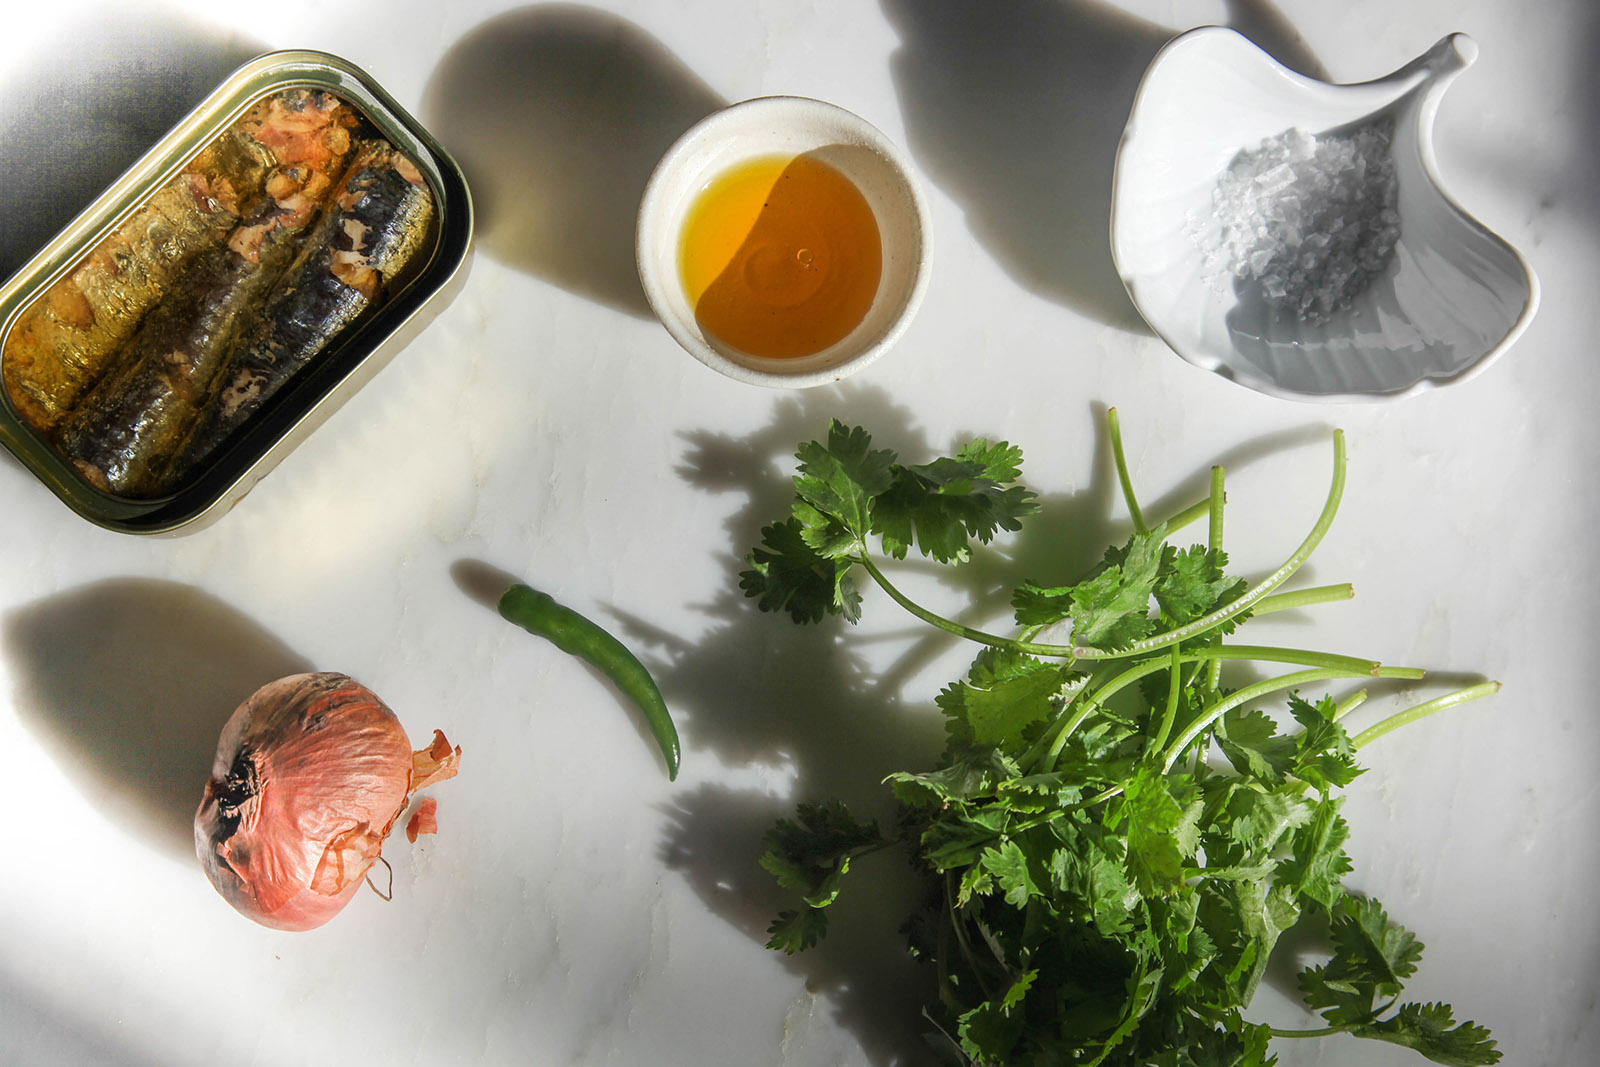 Ingredients for Spicy Mashed Sardines